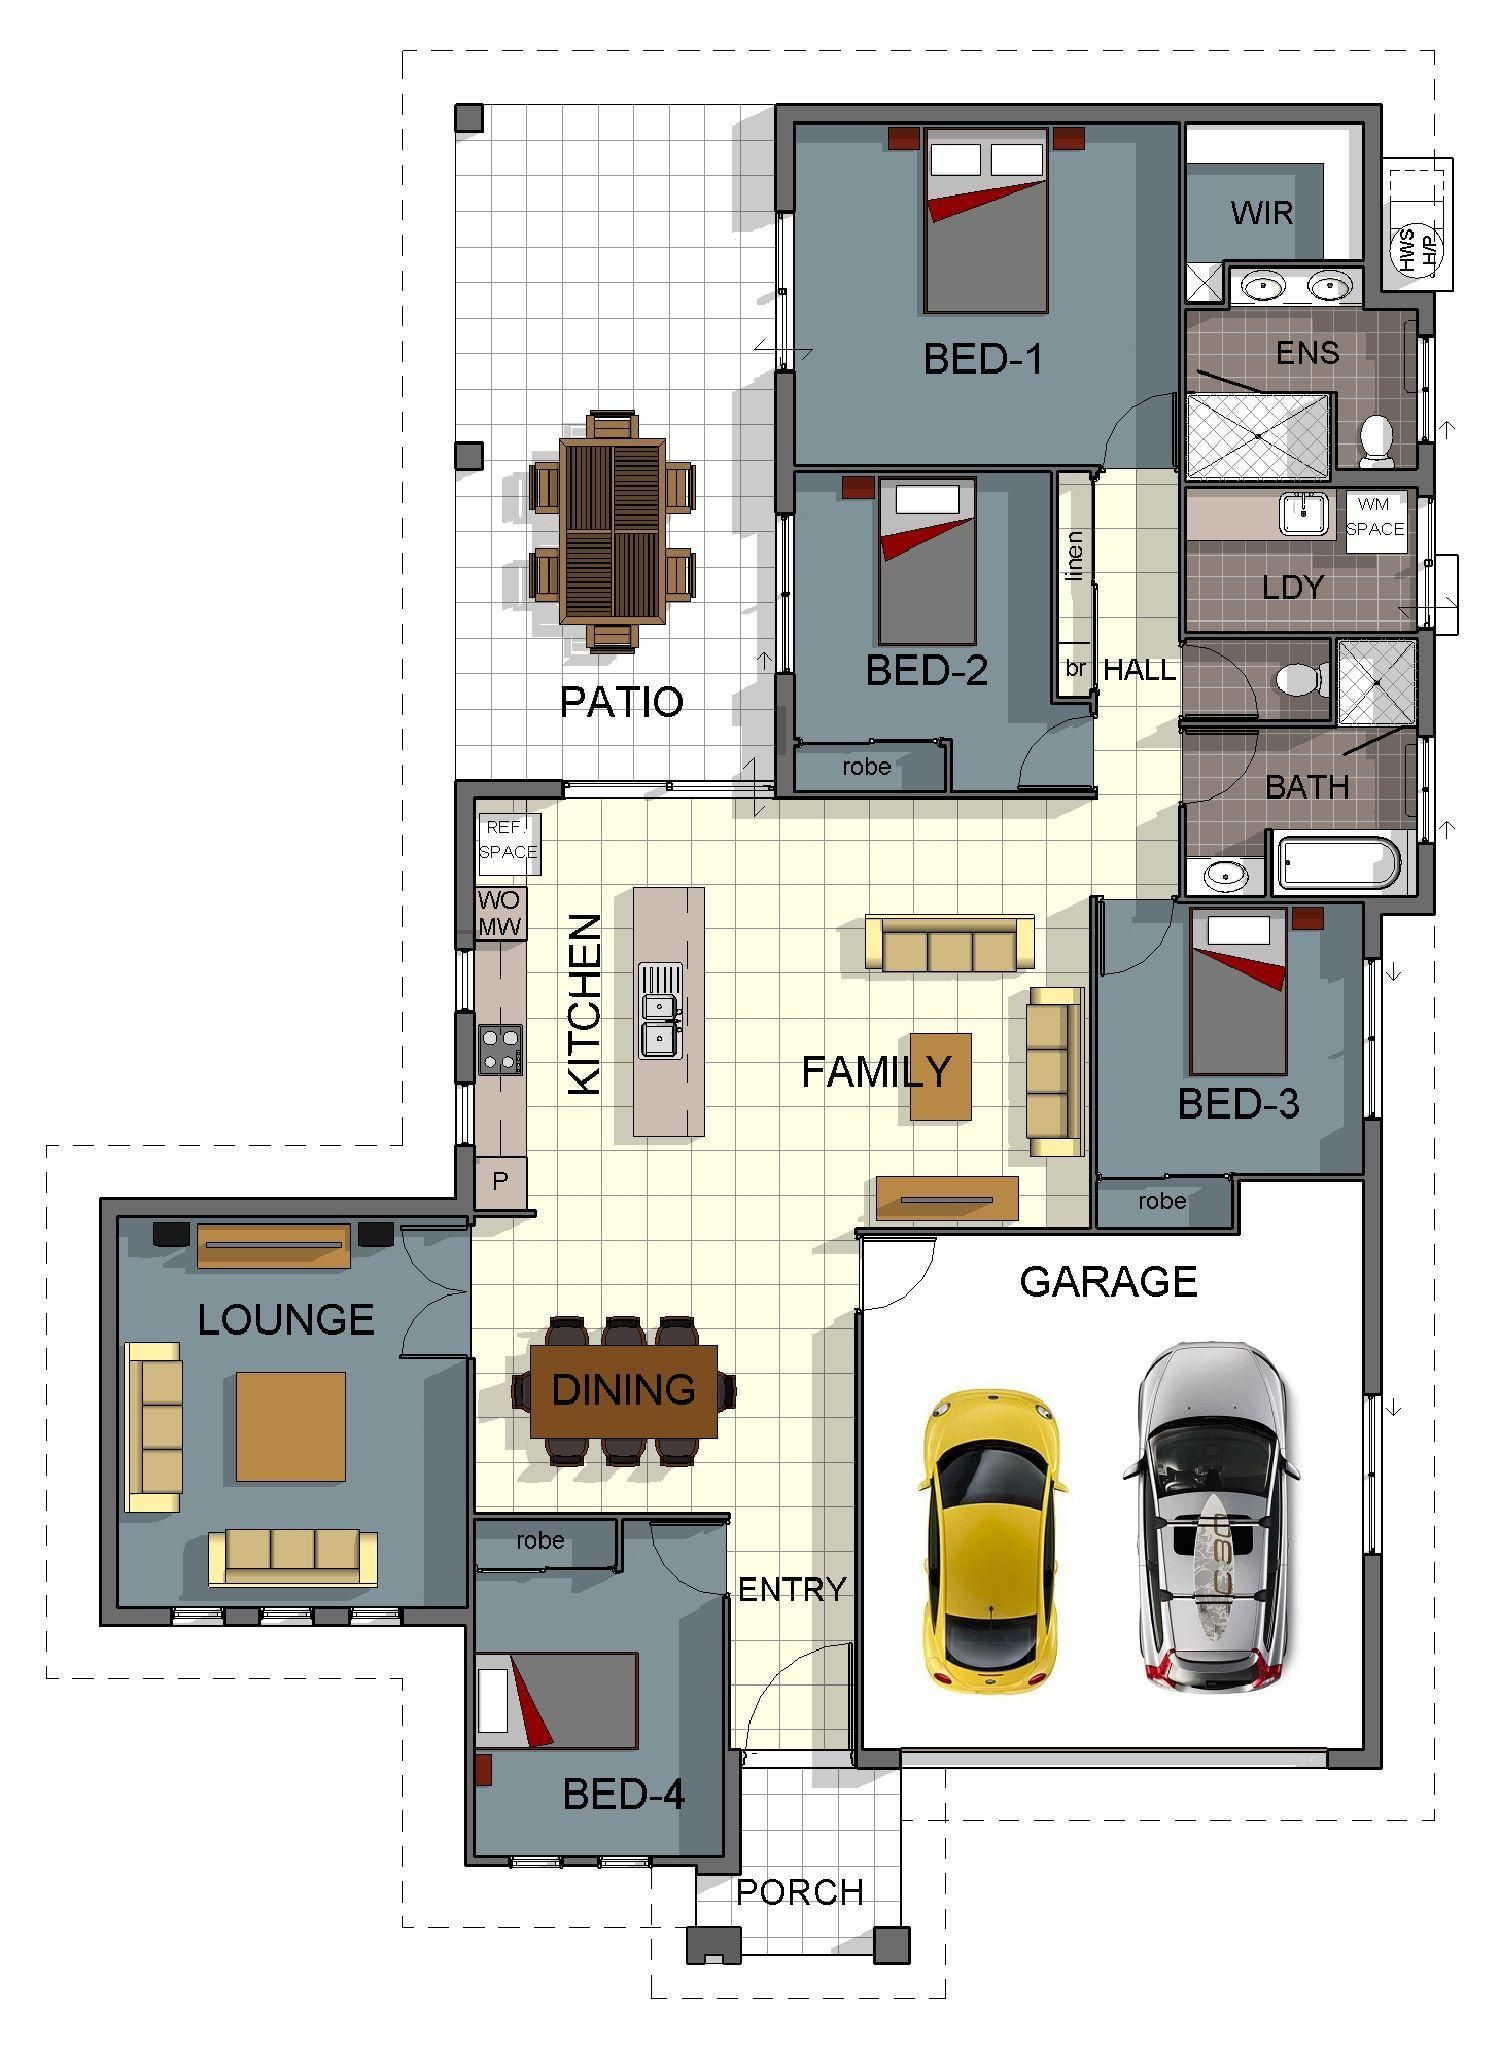 single storey 4 bedroom house floorplan with additional rumpus room and double garage - Rooms In A House Pictures